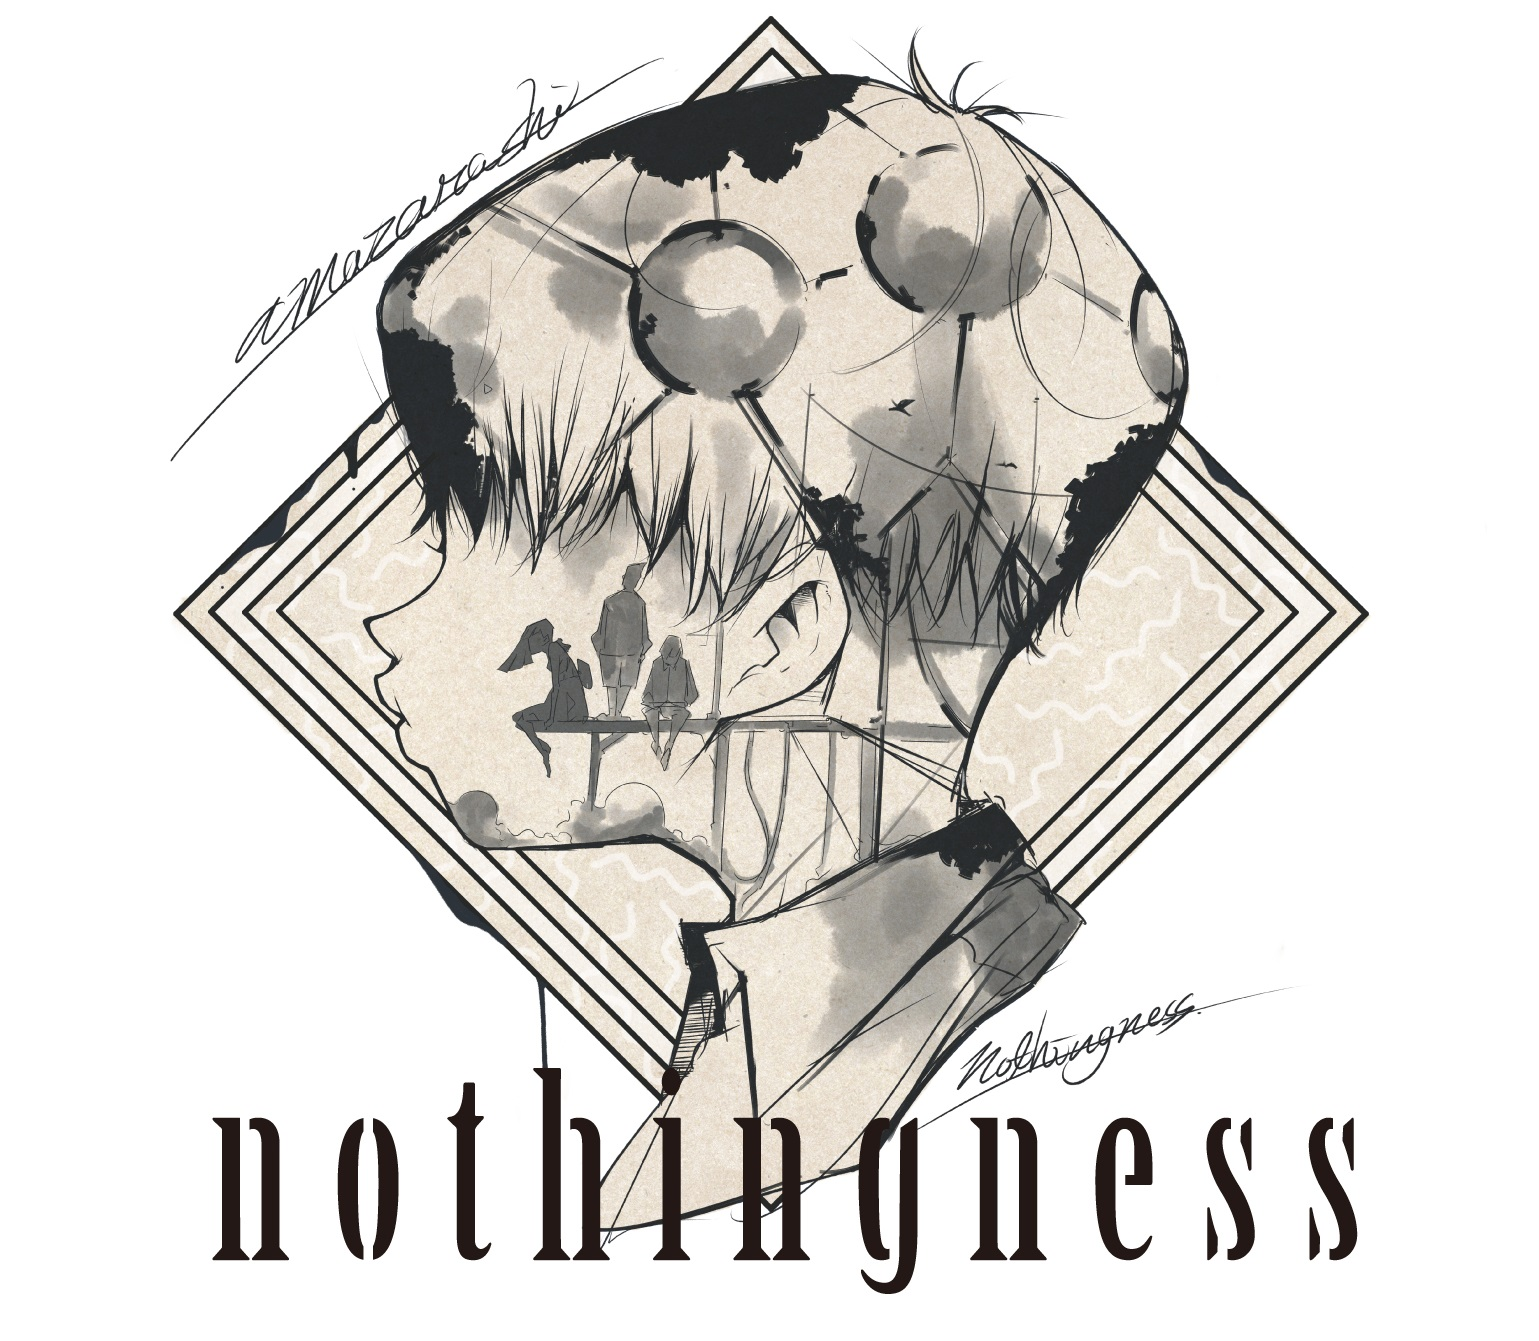 kyomubyo another story picture book -nothingness- ≪限定2,000冊シリアルナンバー入り≫の画像